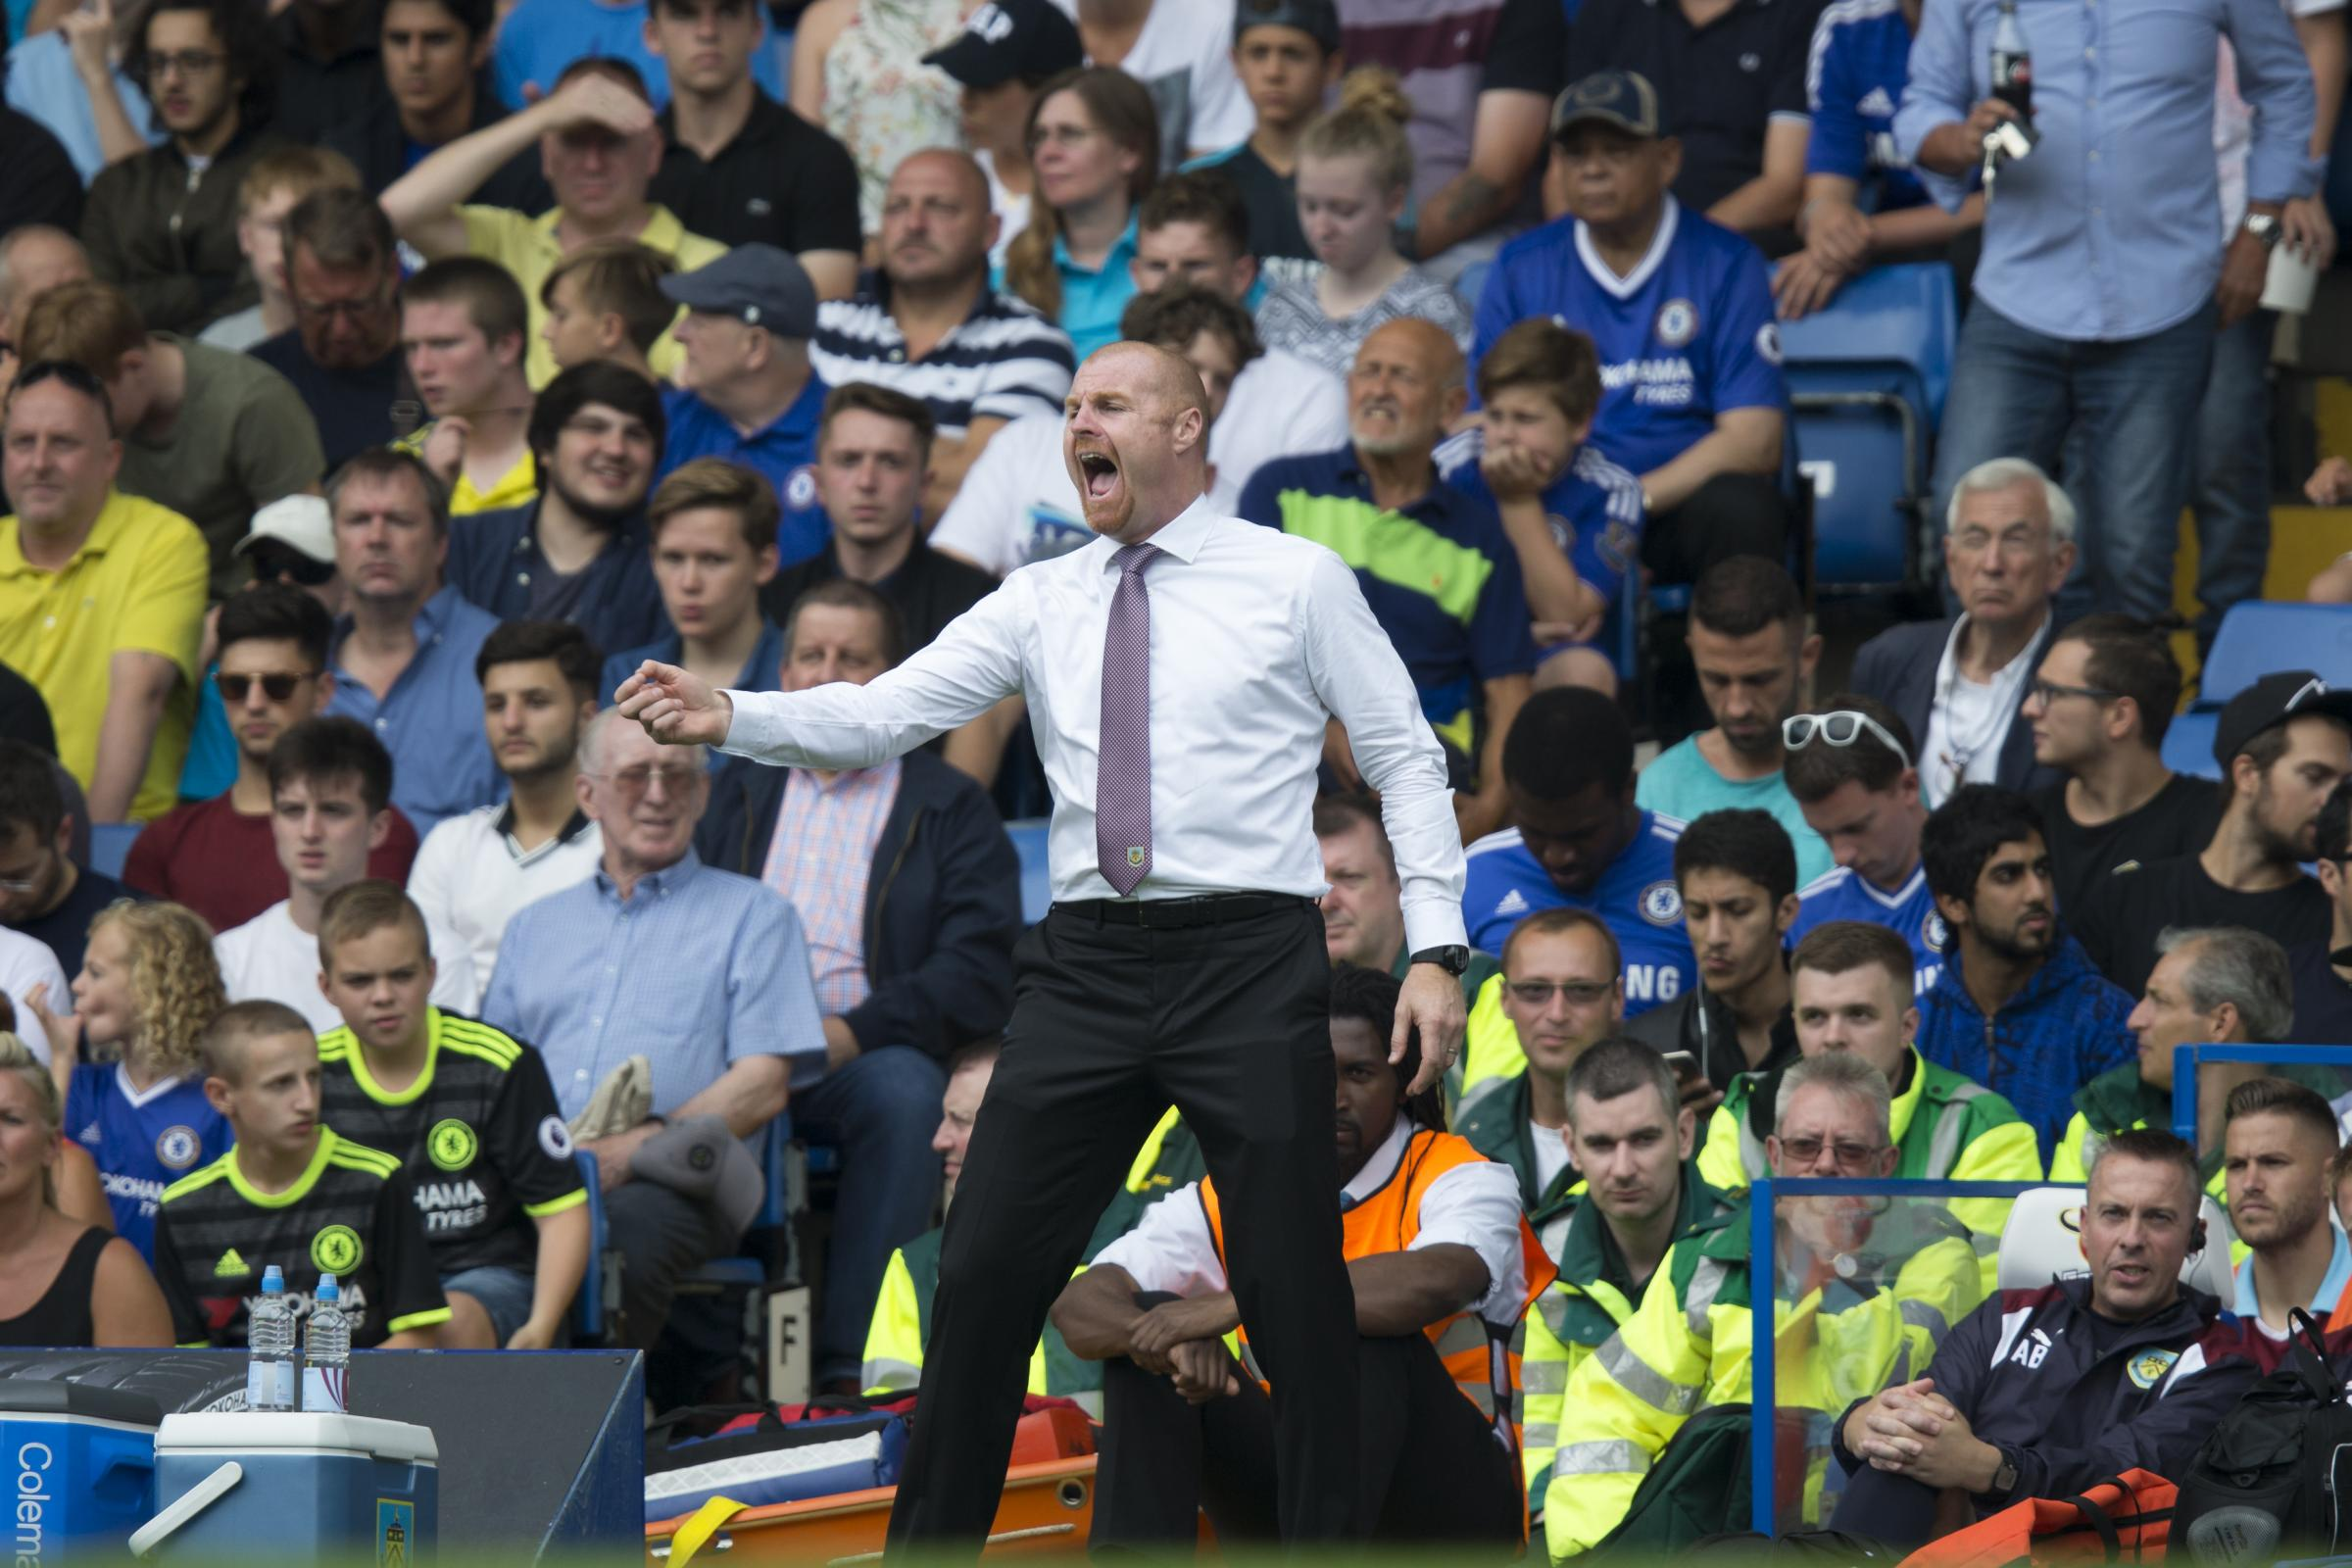 ENCOURAGEMENT: Dyche urges his side on at Stamford Bridge